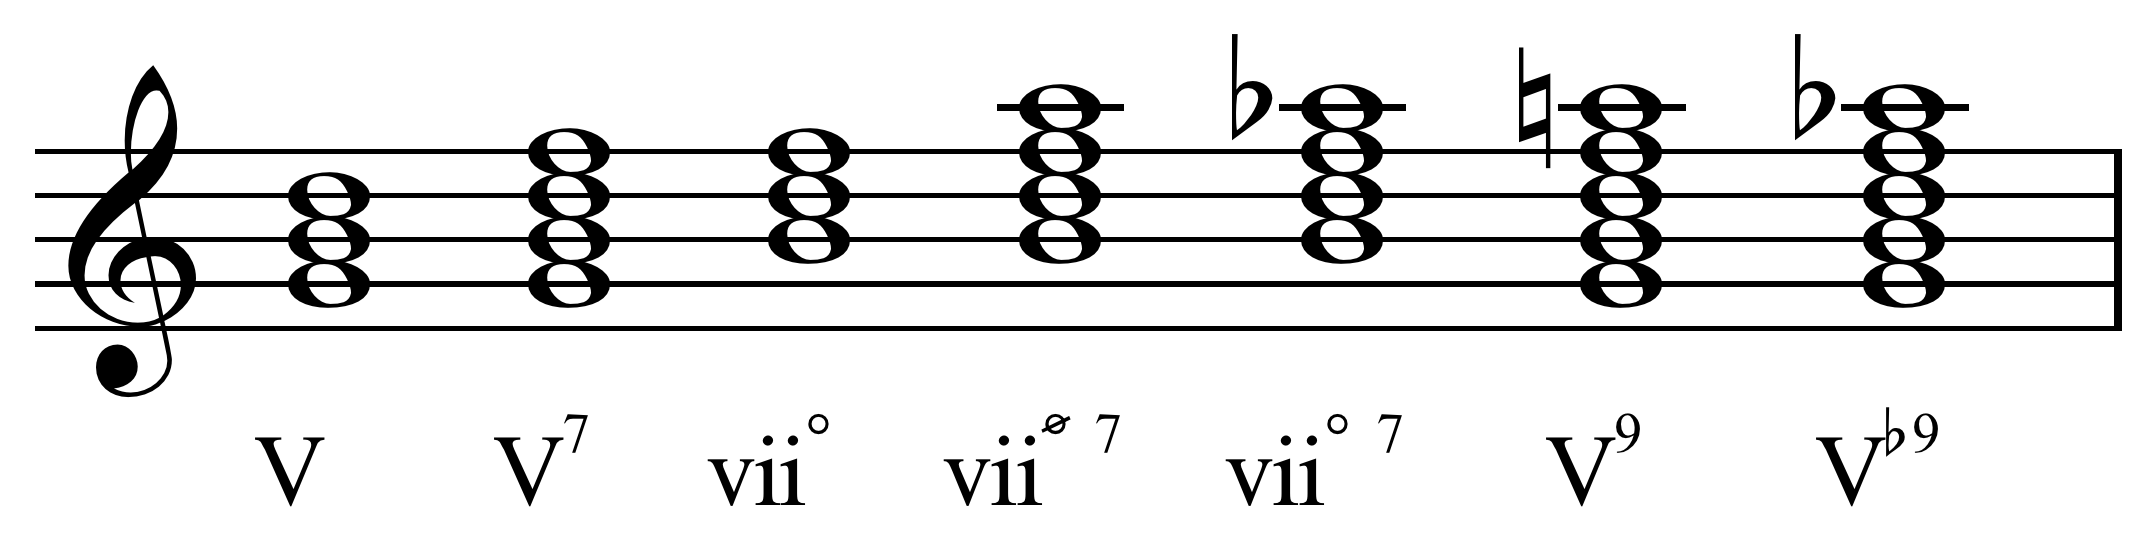 dominant form chords.png